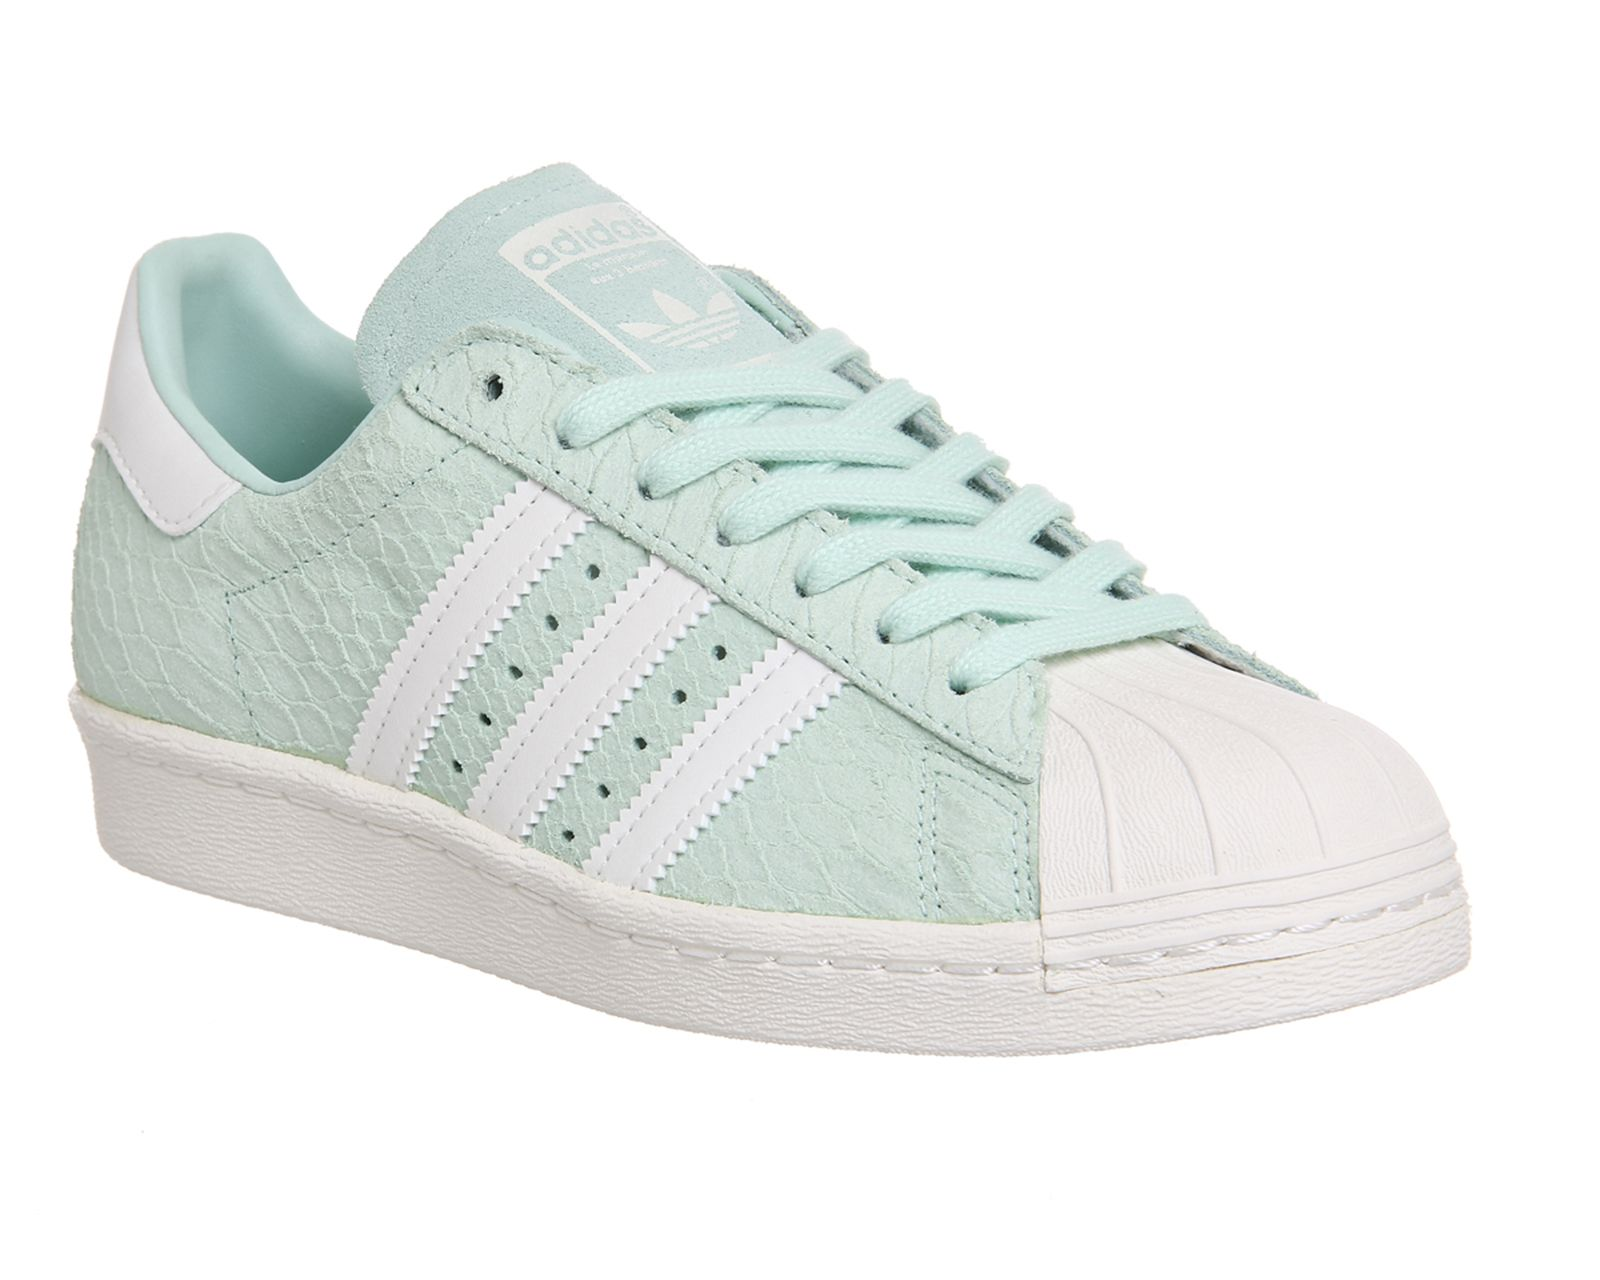 Buy Frost Green White Exclusive Adidas Superstar 80's (w) from OFFICE.co.